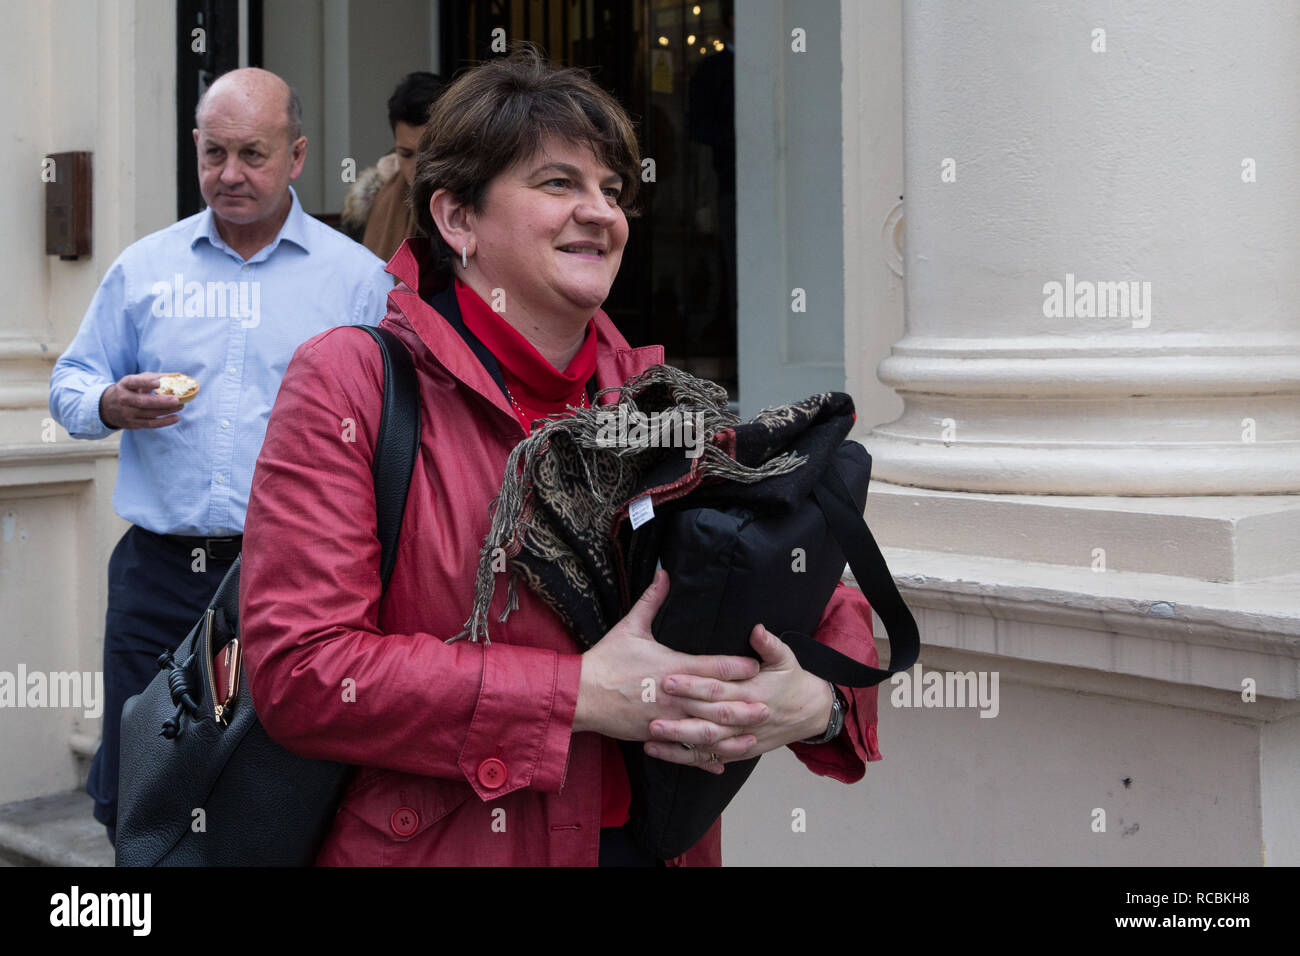 London, UK. 15th Jan, 2019. Arlene Foster, Leader of the Democratic Unionist Party (DUP), leaves the British Academy after speaking at the launch of the 'A Better Deal' pamphlet with David Davis MP, Dominic Raab MP and Lord Lilley. The pamphlet sets out proposals for an alternative EU withdrawal agreement. Credit: Mark Kerrison/Alamy Live News - Stock Image